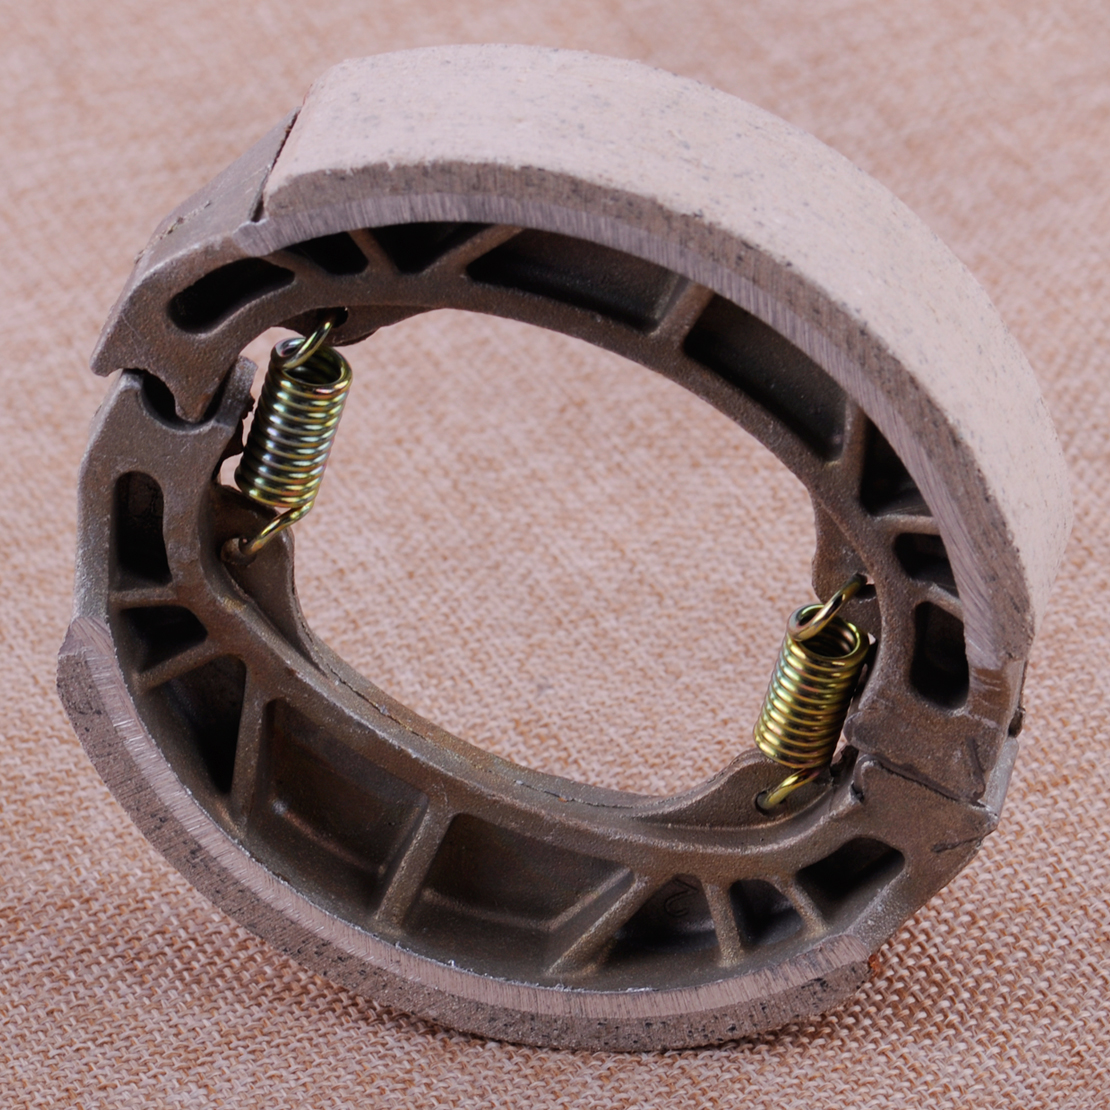 CITALL Motorcycle 105mm Rear Drum Brake Pads Shoes Pads fit for 50cc 110cc 125cc 150cc Gy6 Moped Scooter promax driven wheel block for gy6 150cc scooters atvs go karts moped quads 4 wheeler dune buggys